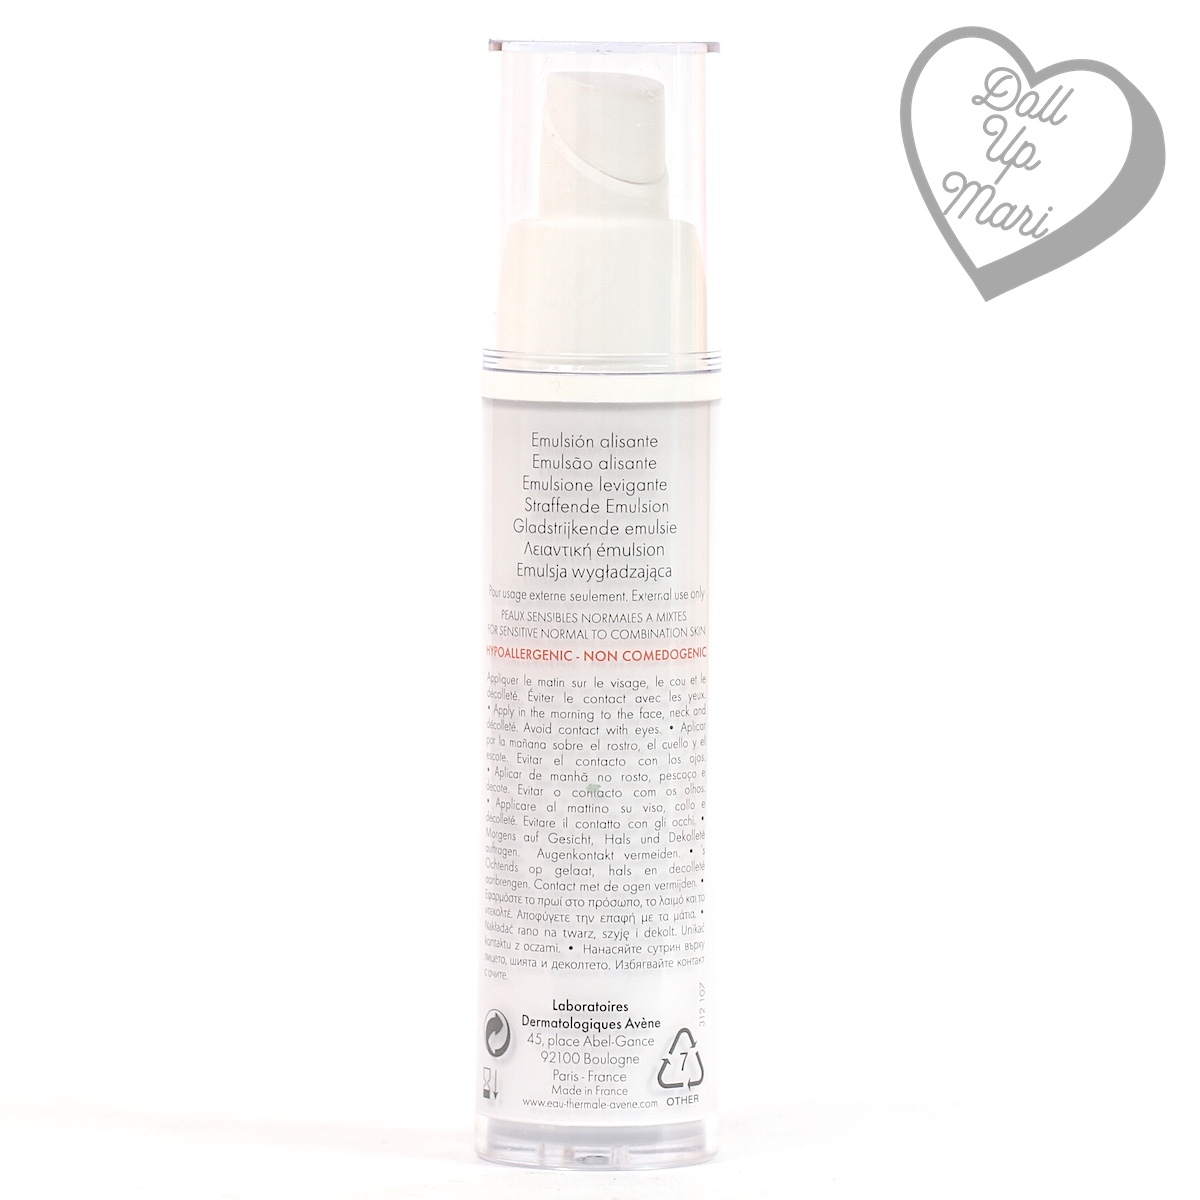 Bottle rear of Avène PhysioLift Day Smoothing Emulsion